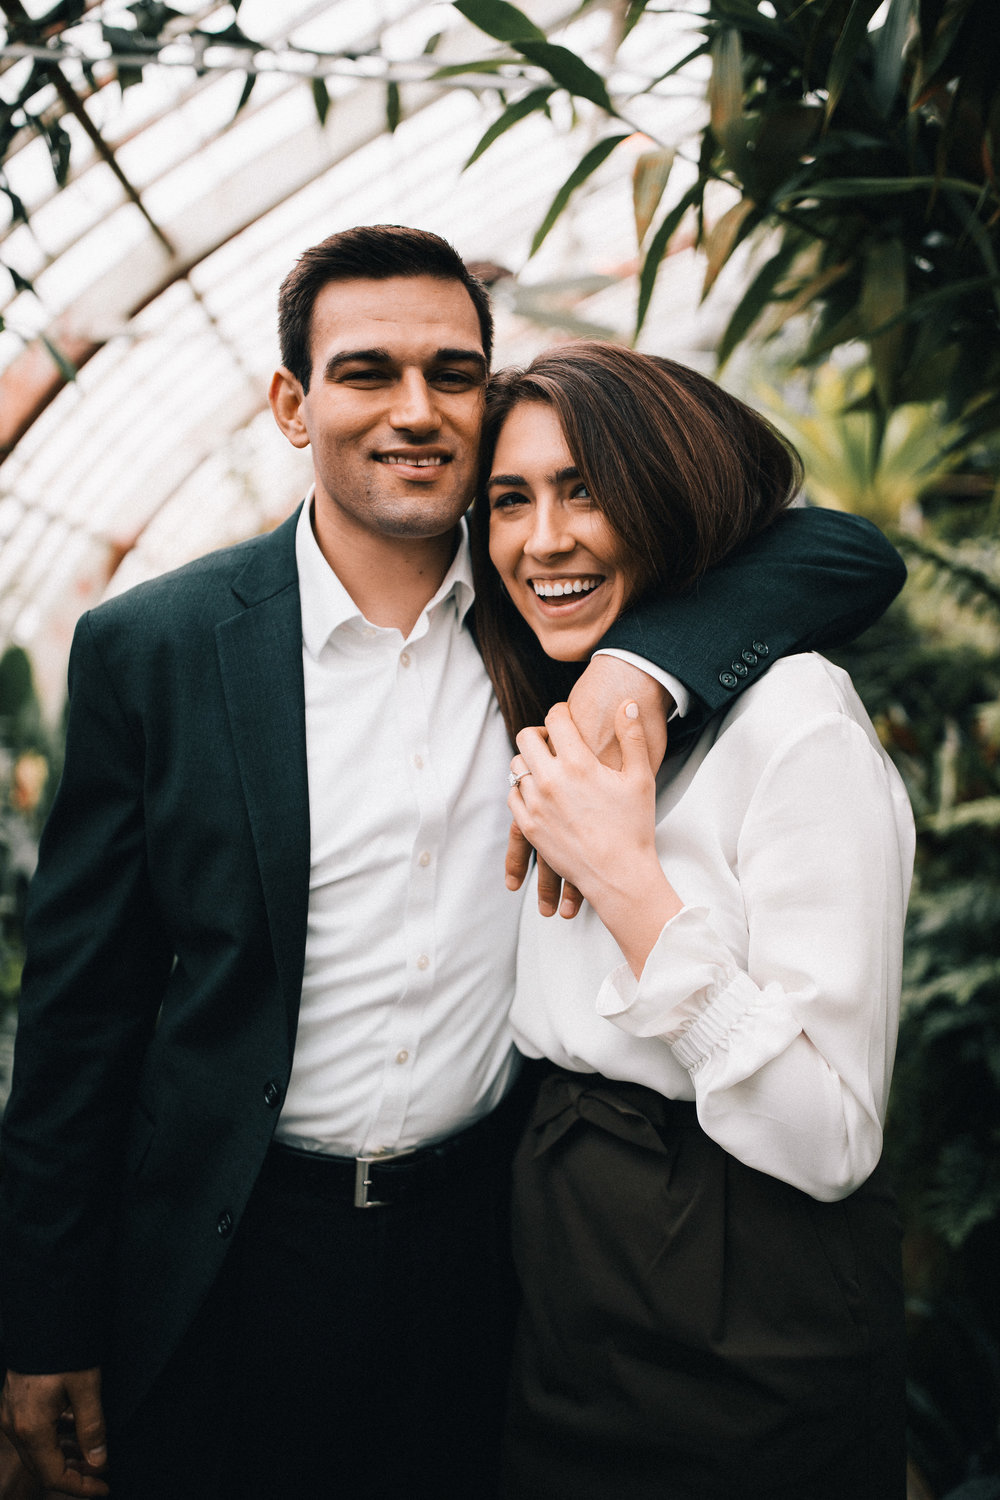 2019_04_ 072019.04.08 Ana and Richard Engagement Session Edited For Web 0012.jpg